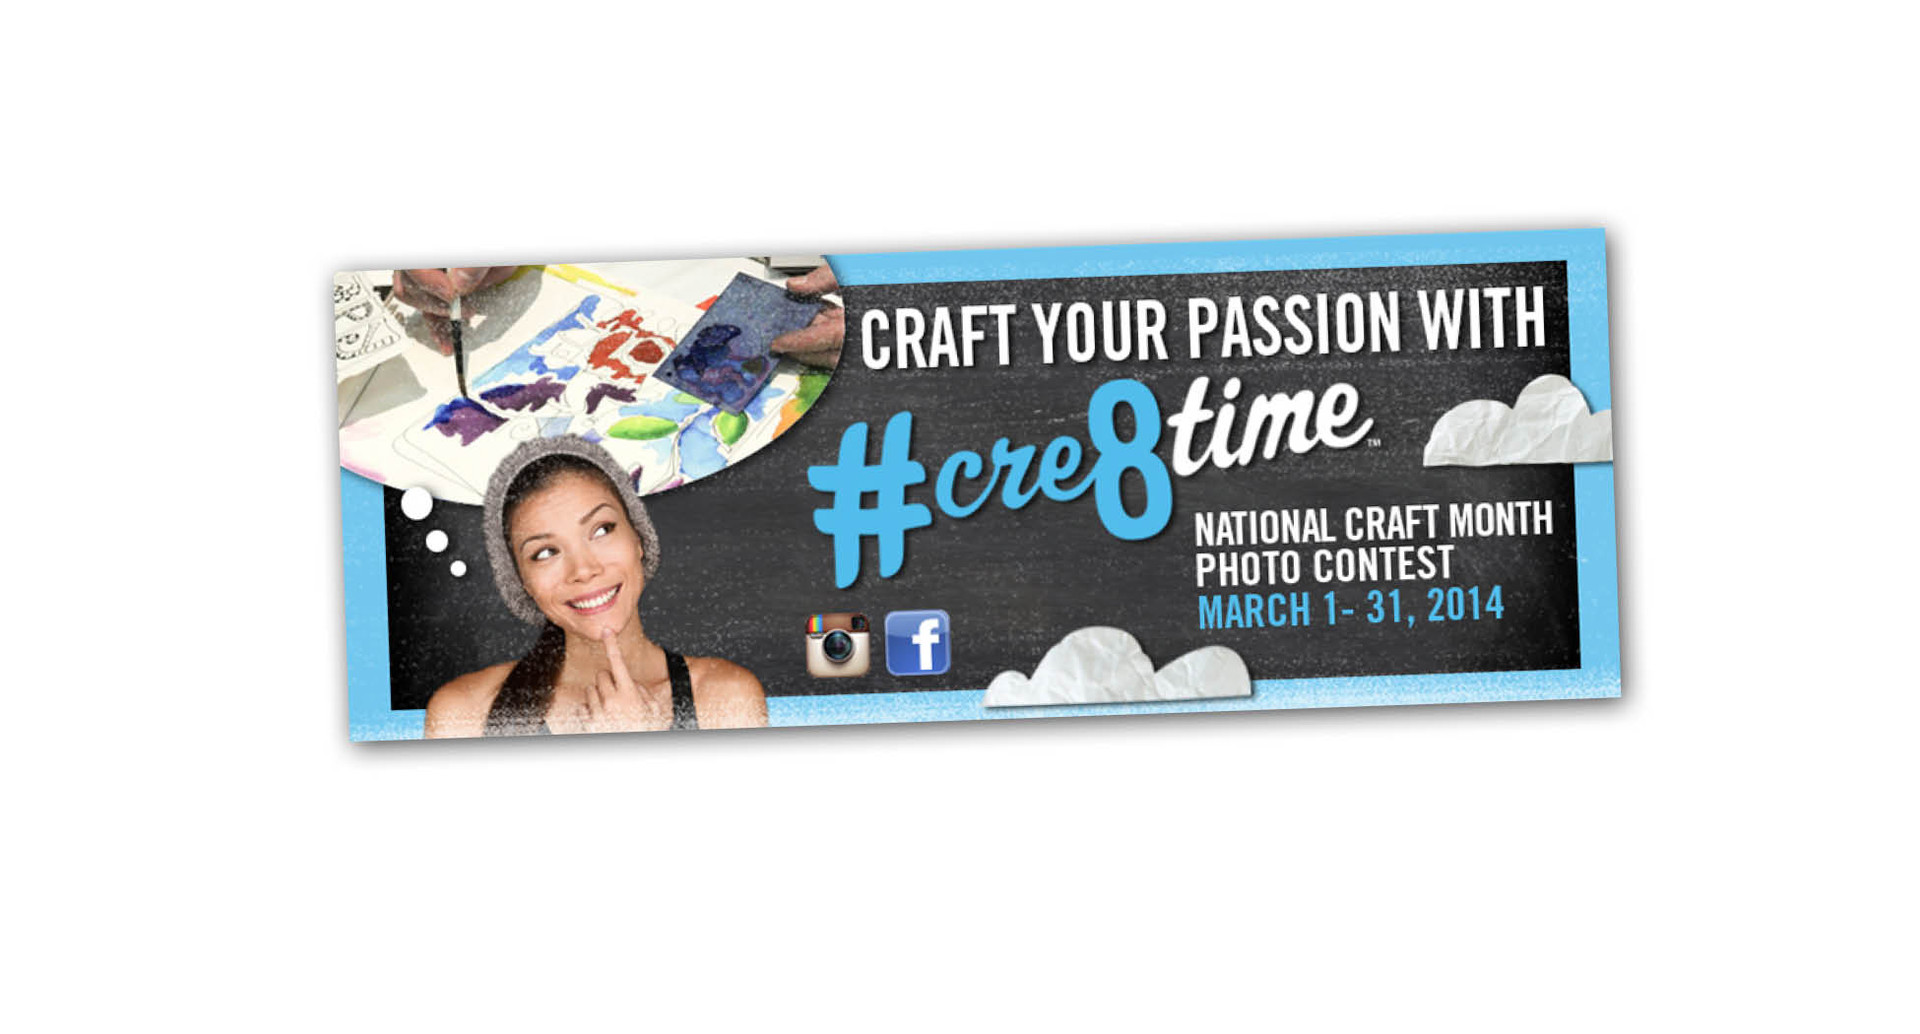 Cre8time Banner ad